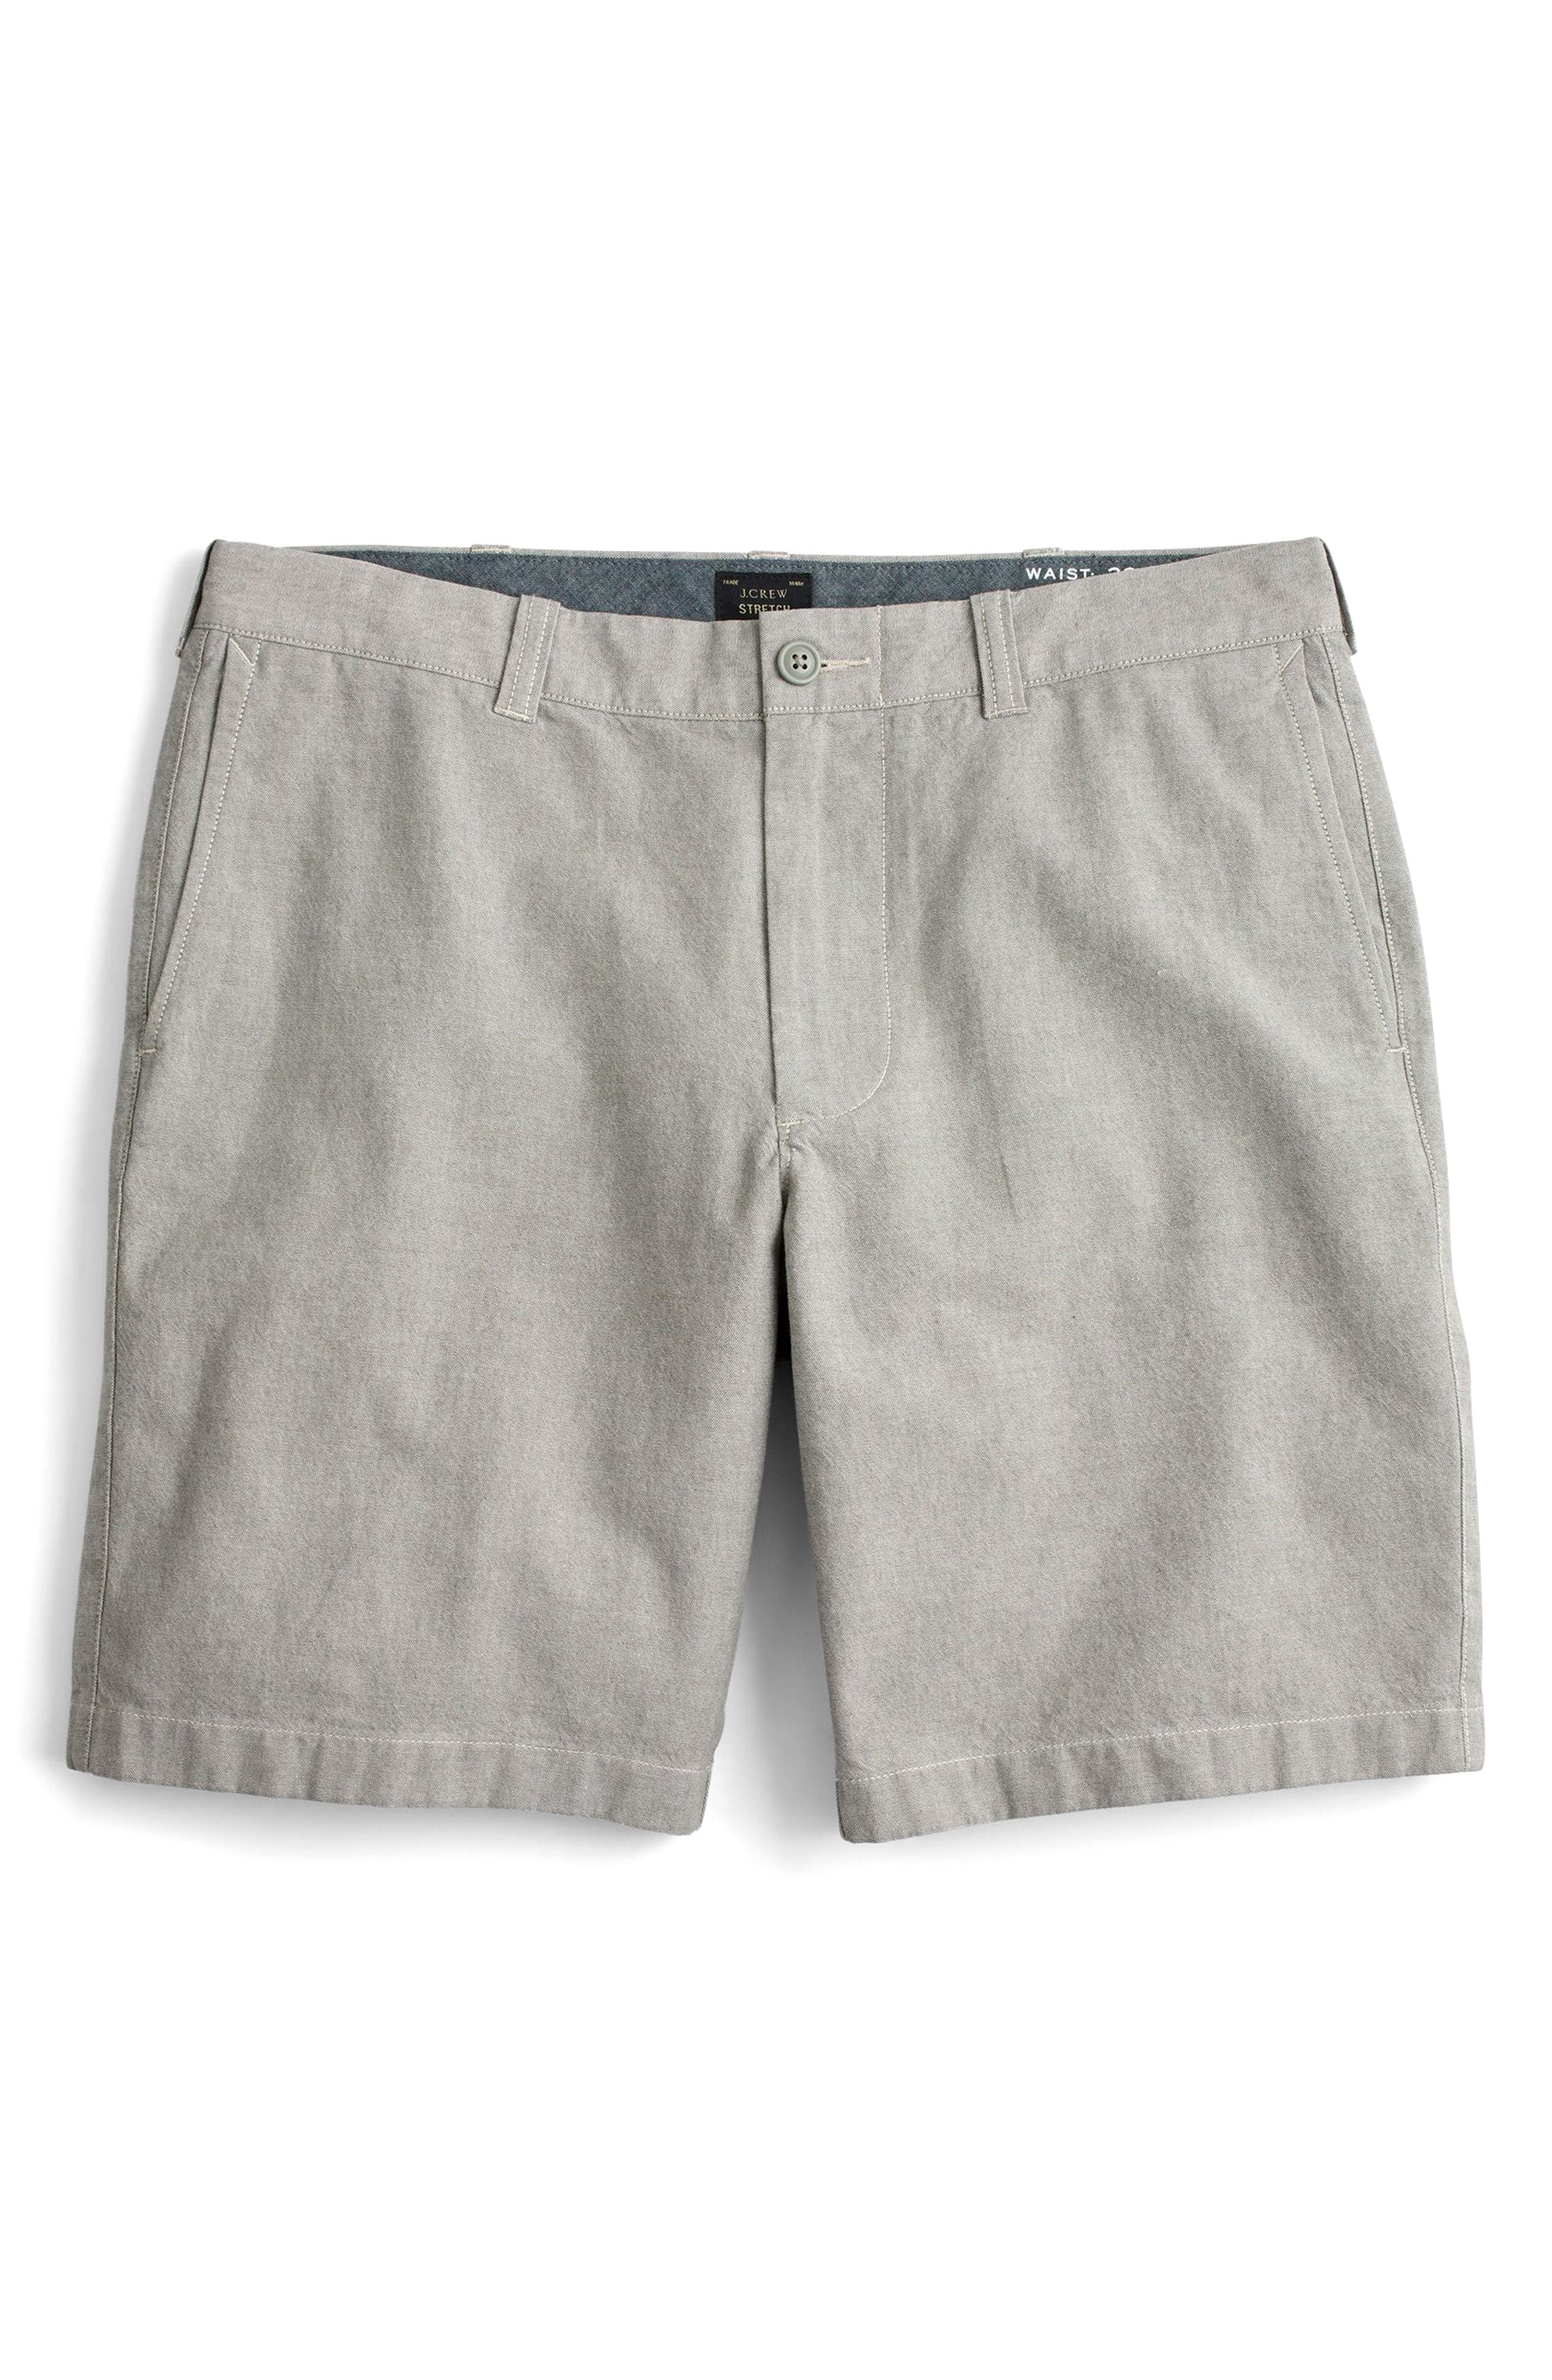 Stretch Chambray Shorts,                             Alternate thumbnail 4, color,                             020